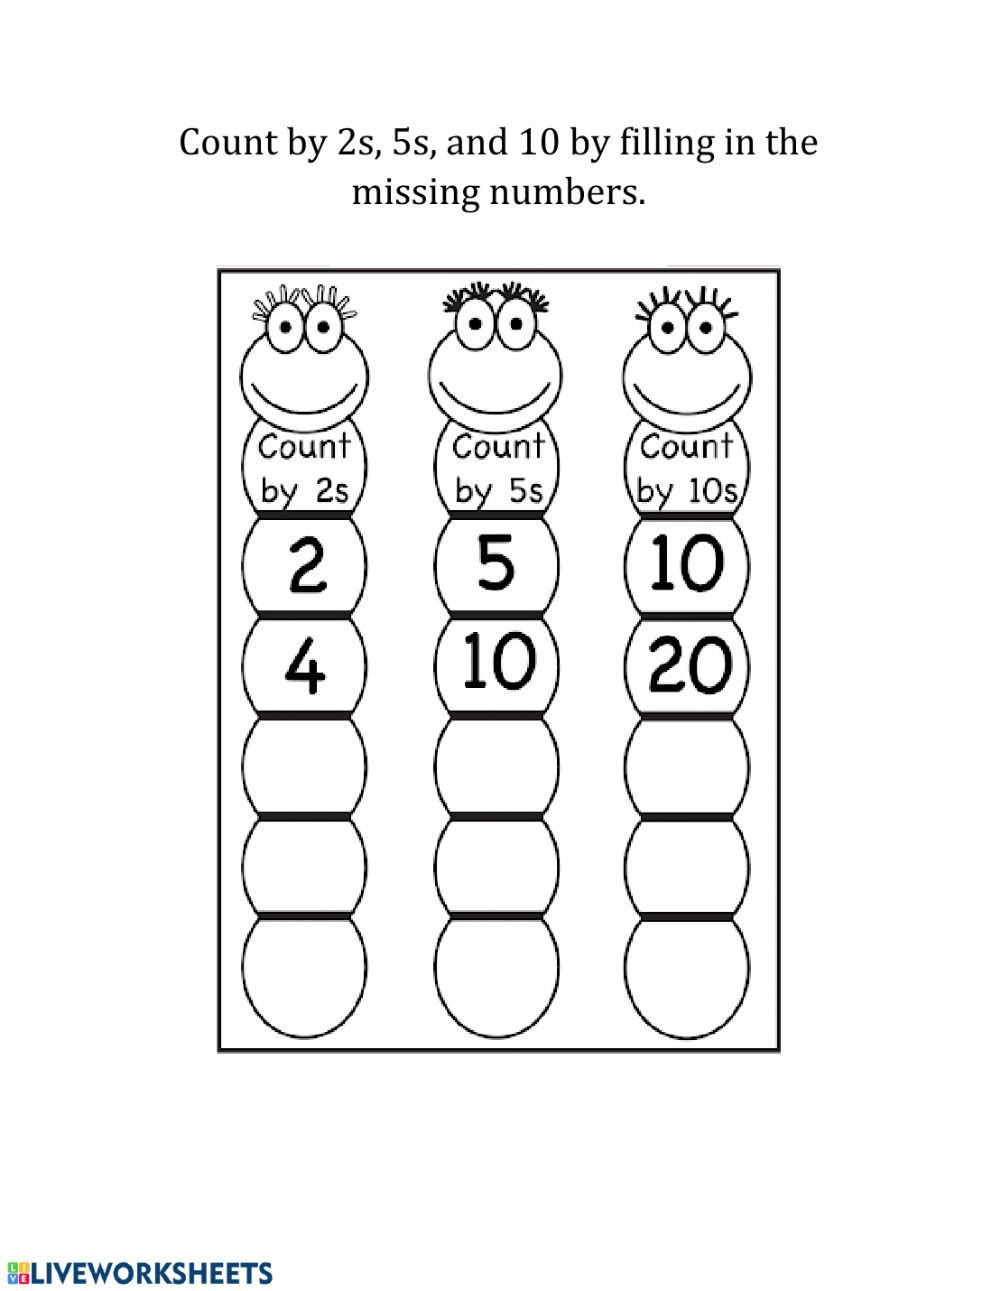 Count by 2s 5s and 10s mz mm